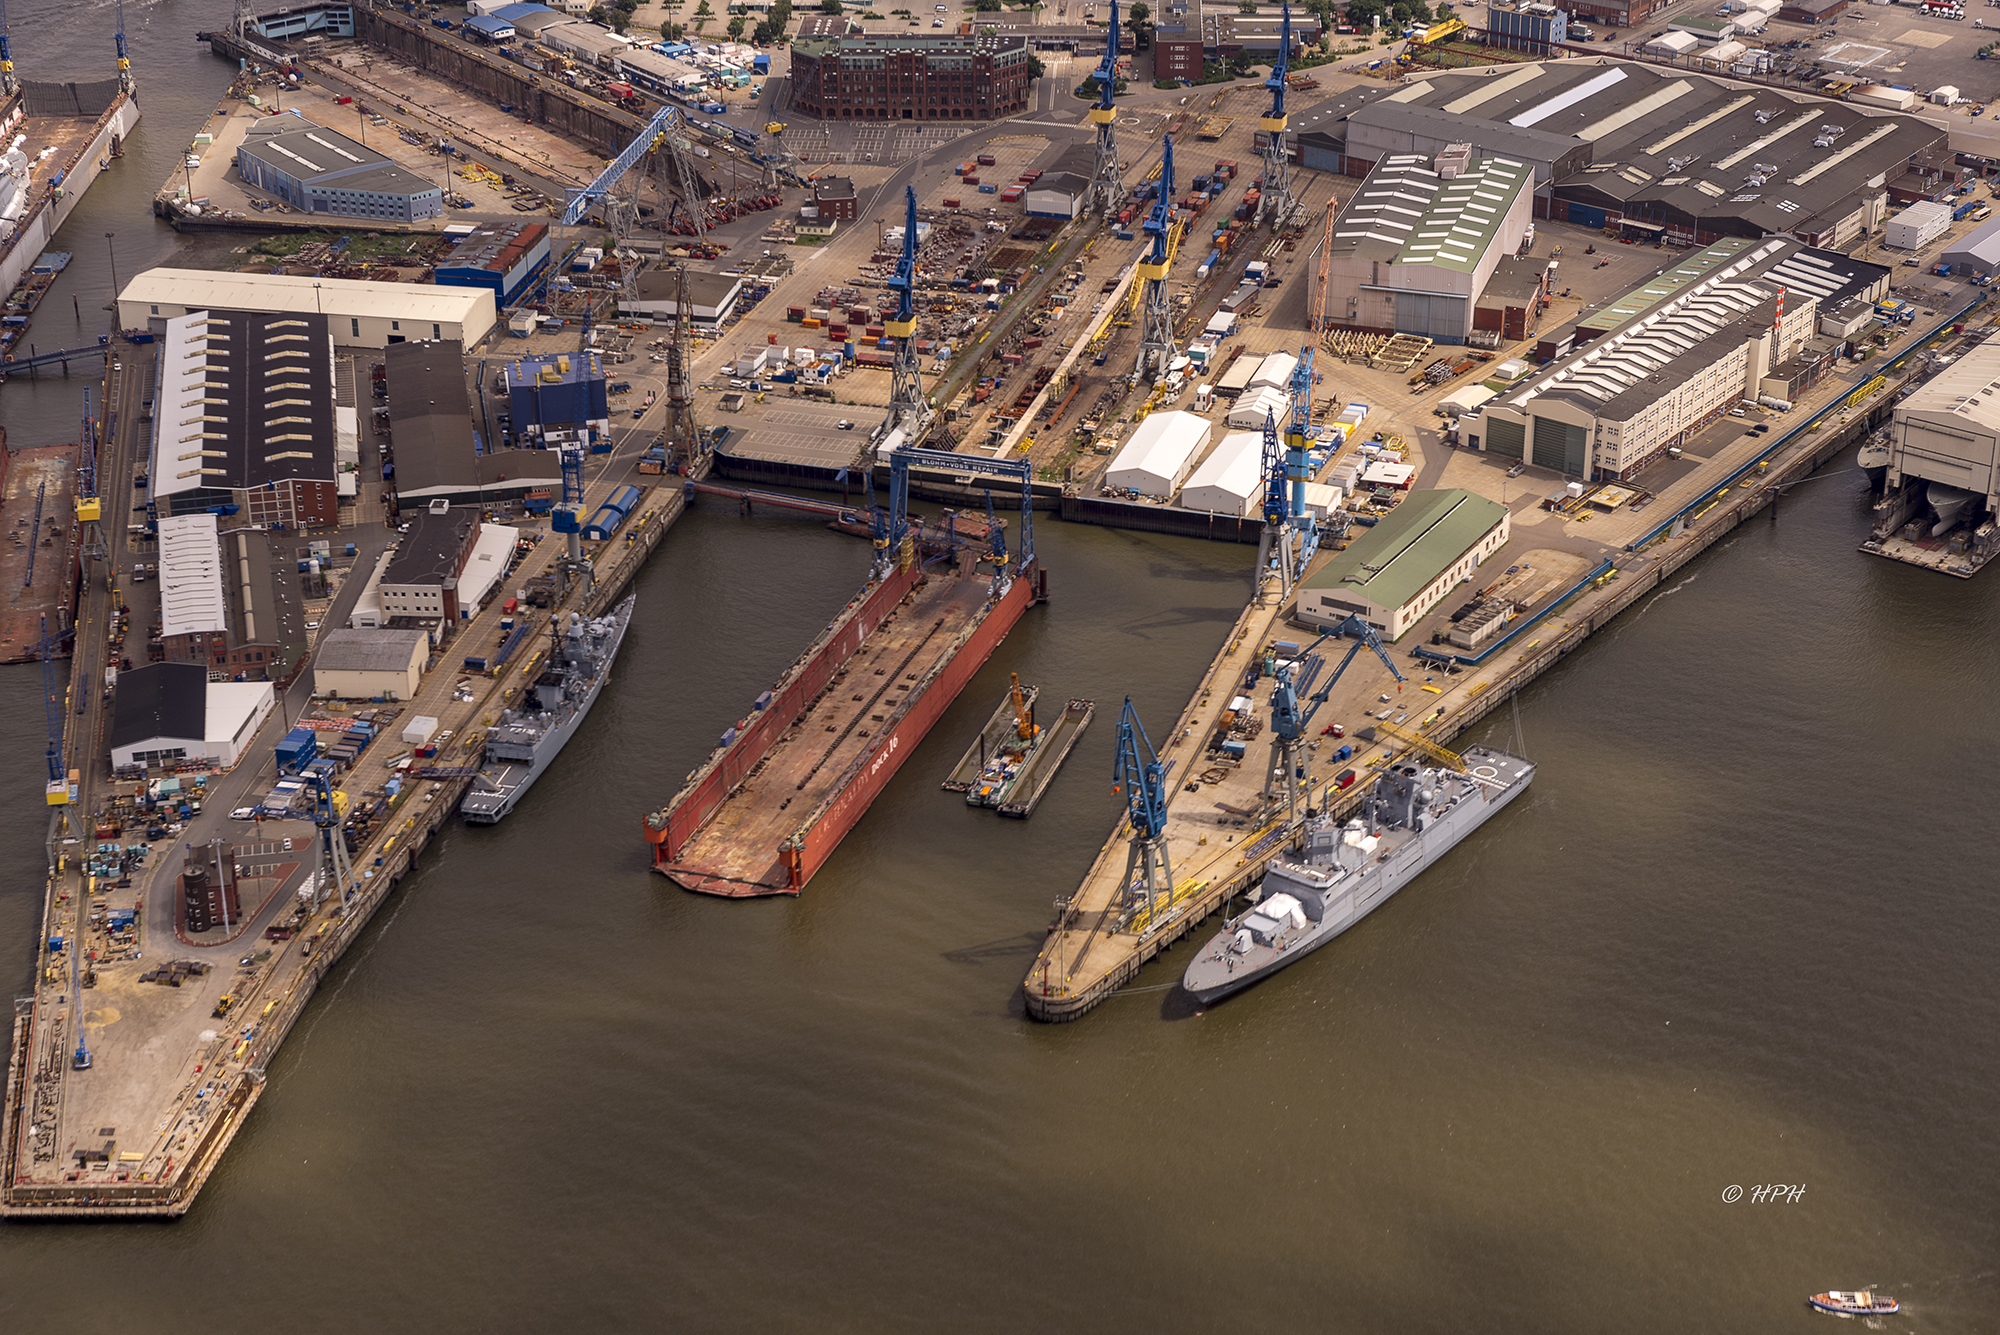 Aerial view of the Elbe river in Hamburg, Germany